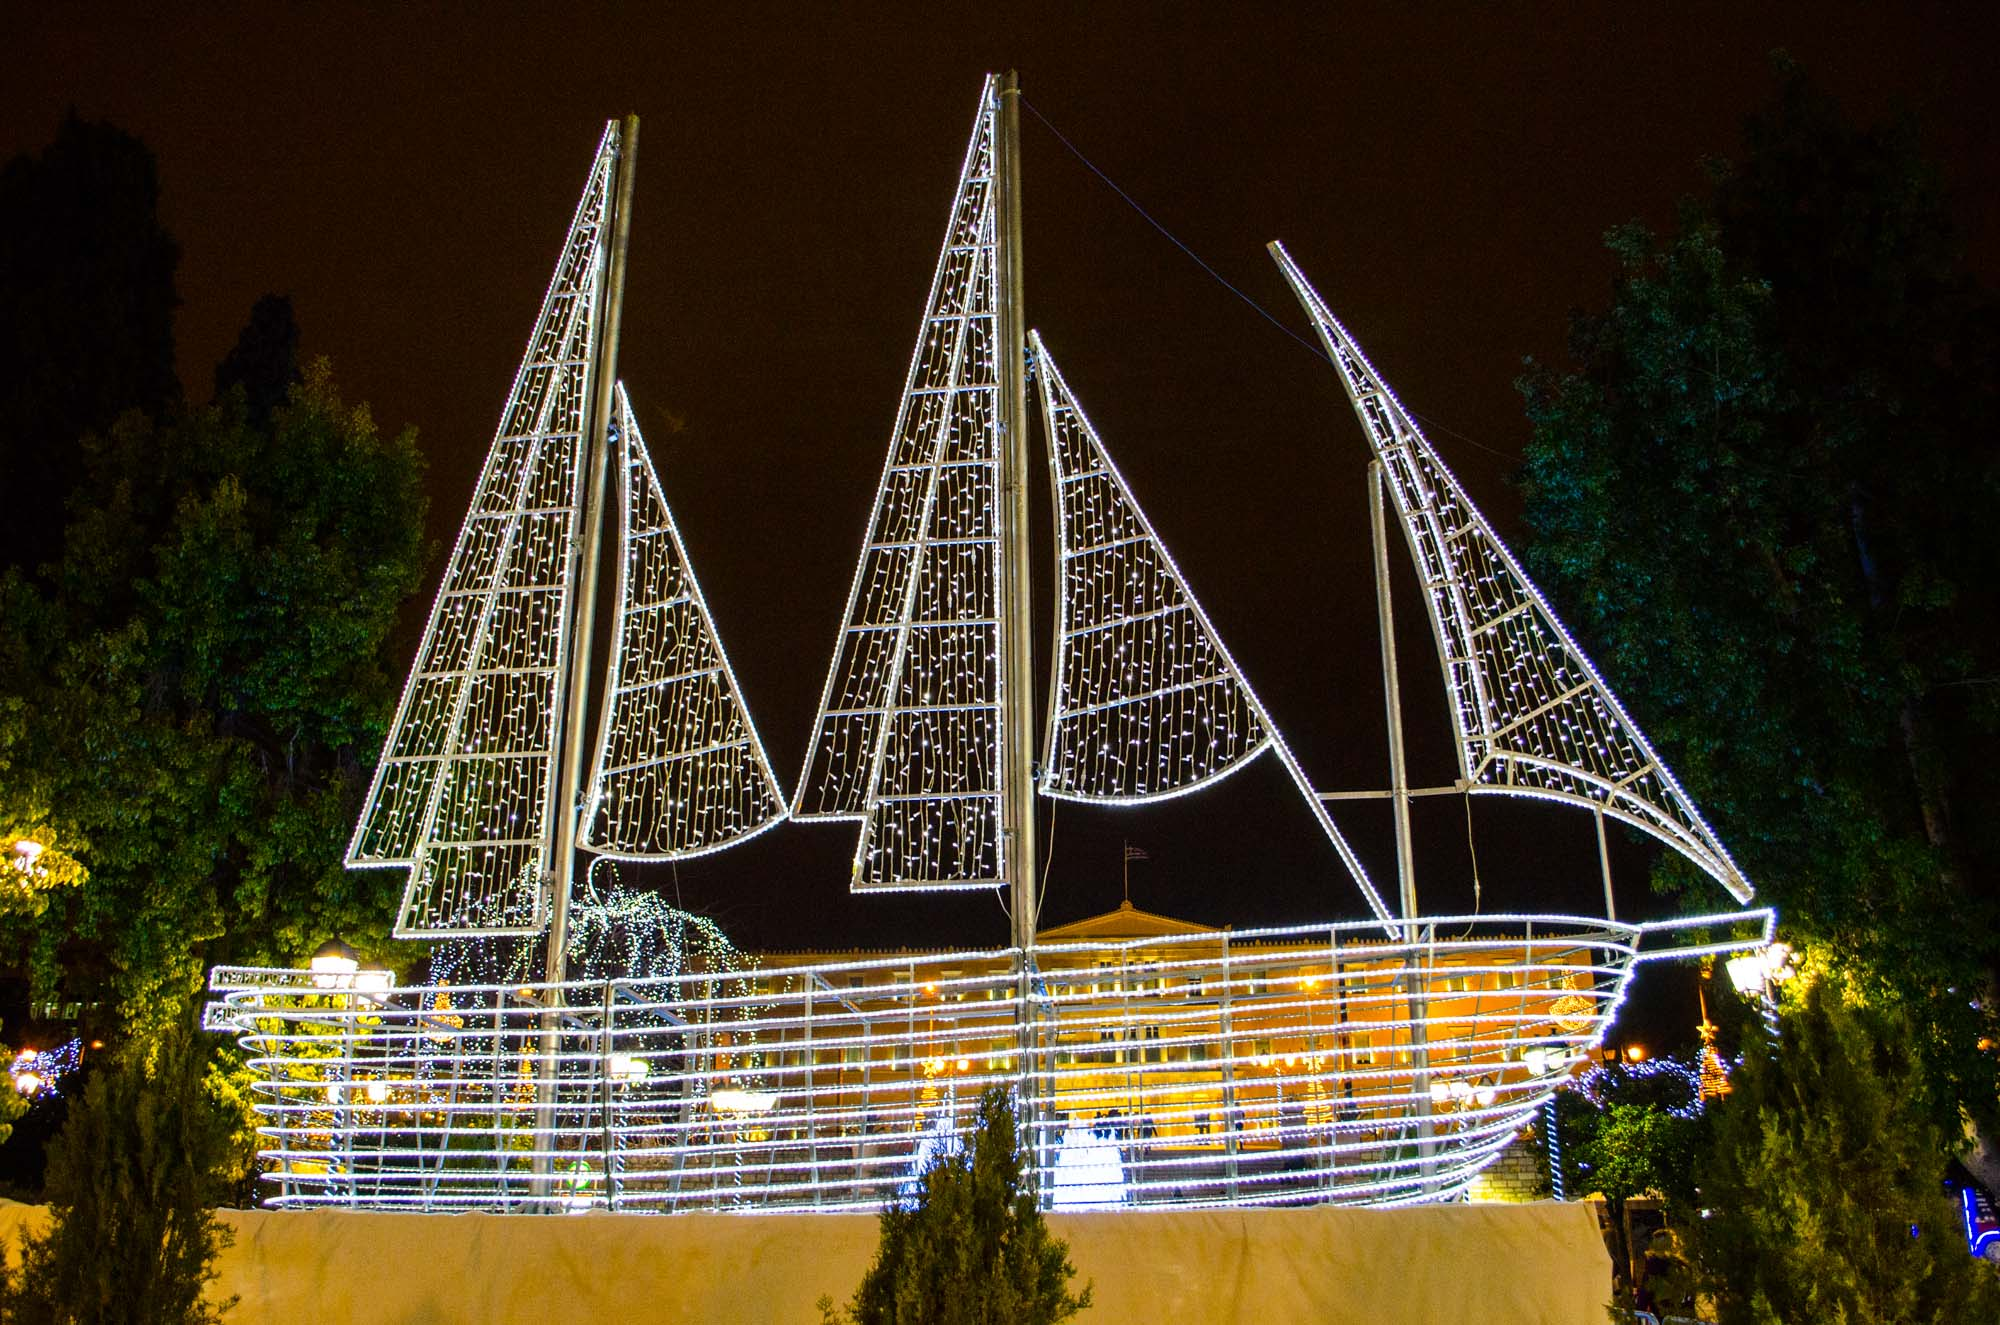 Christmas Boat Greece.What Makes Greek Christmas Special